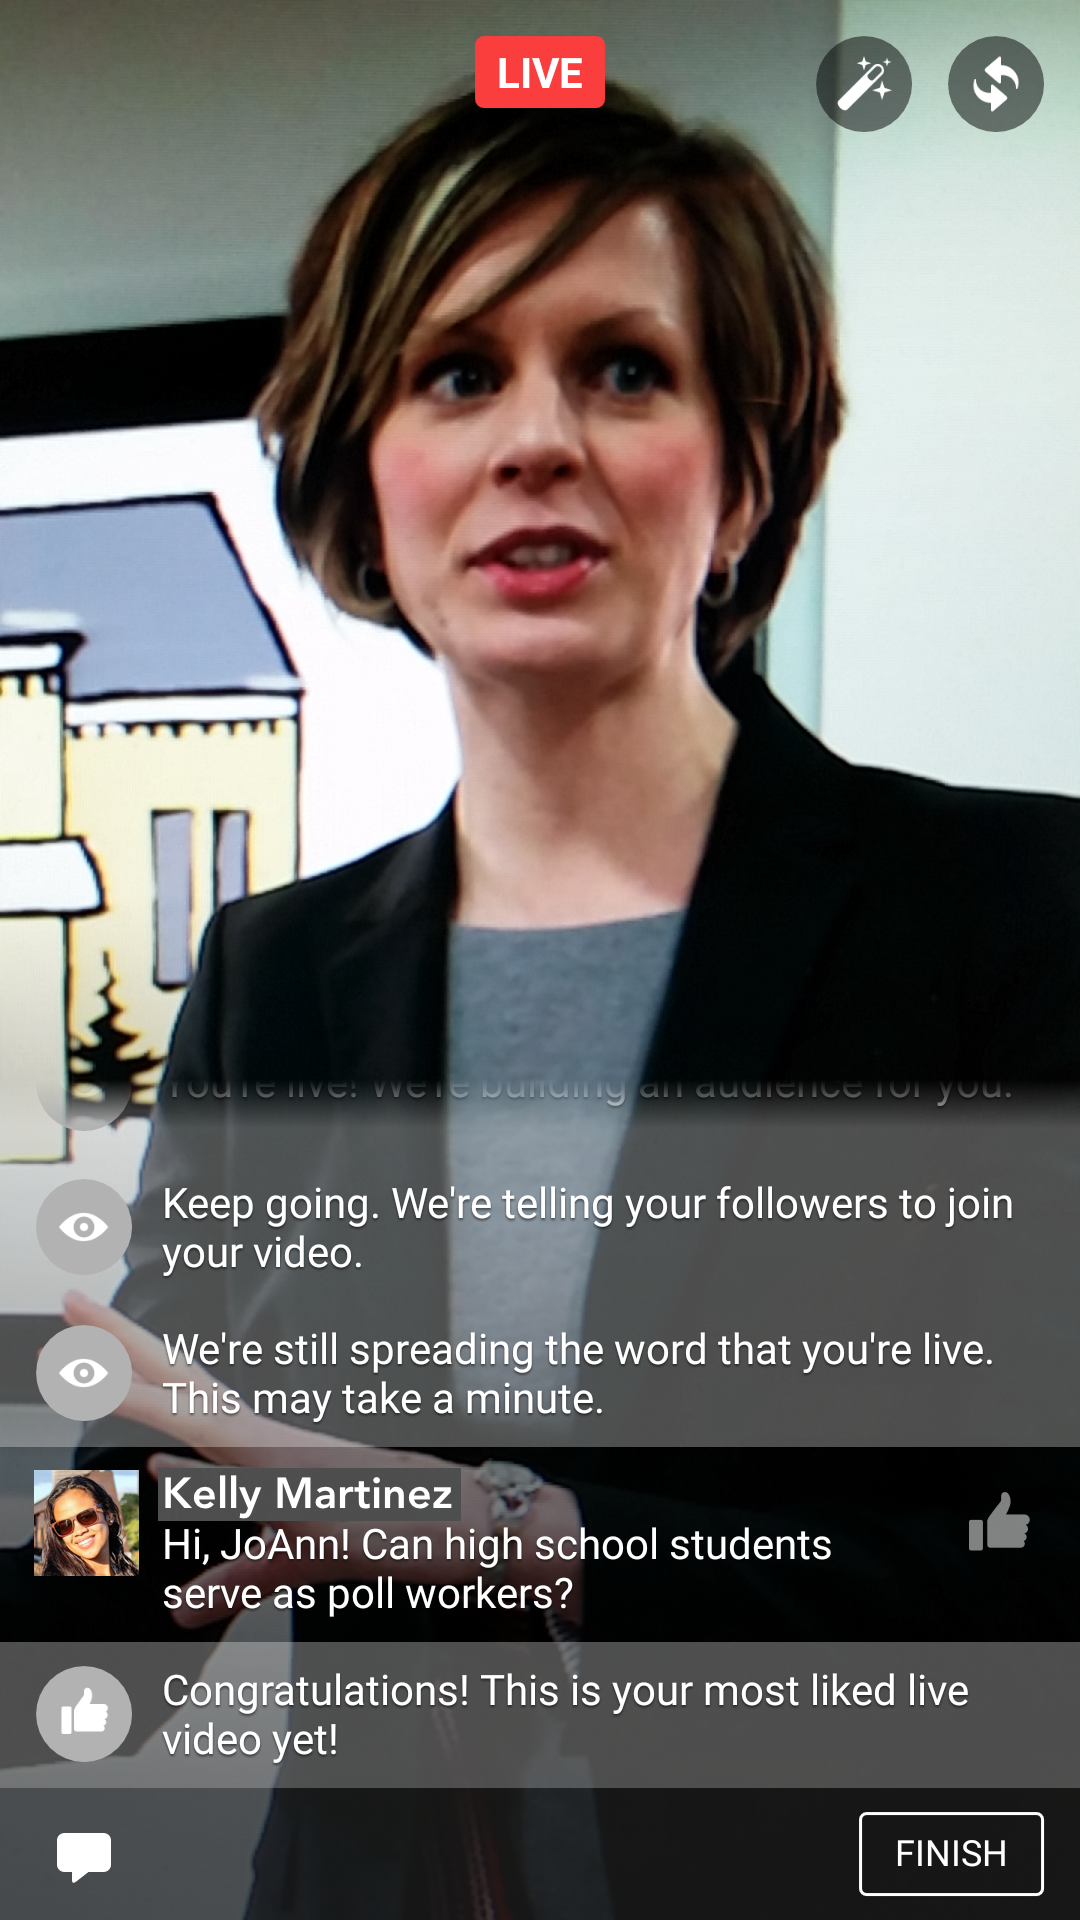 Facebook Live's notifications frame, with text notifications appearing over the camera image